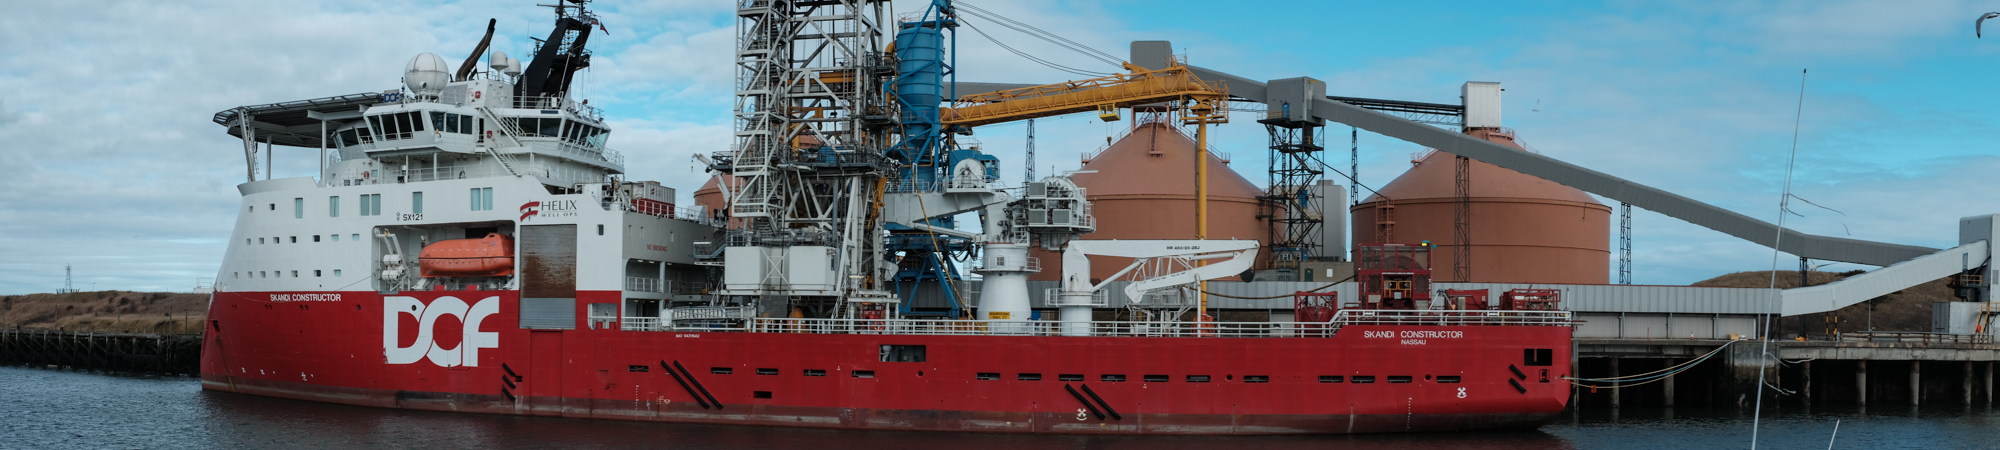 Panorama Shot of a ship in Blyth harbour